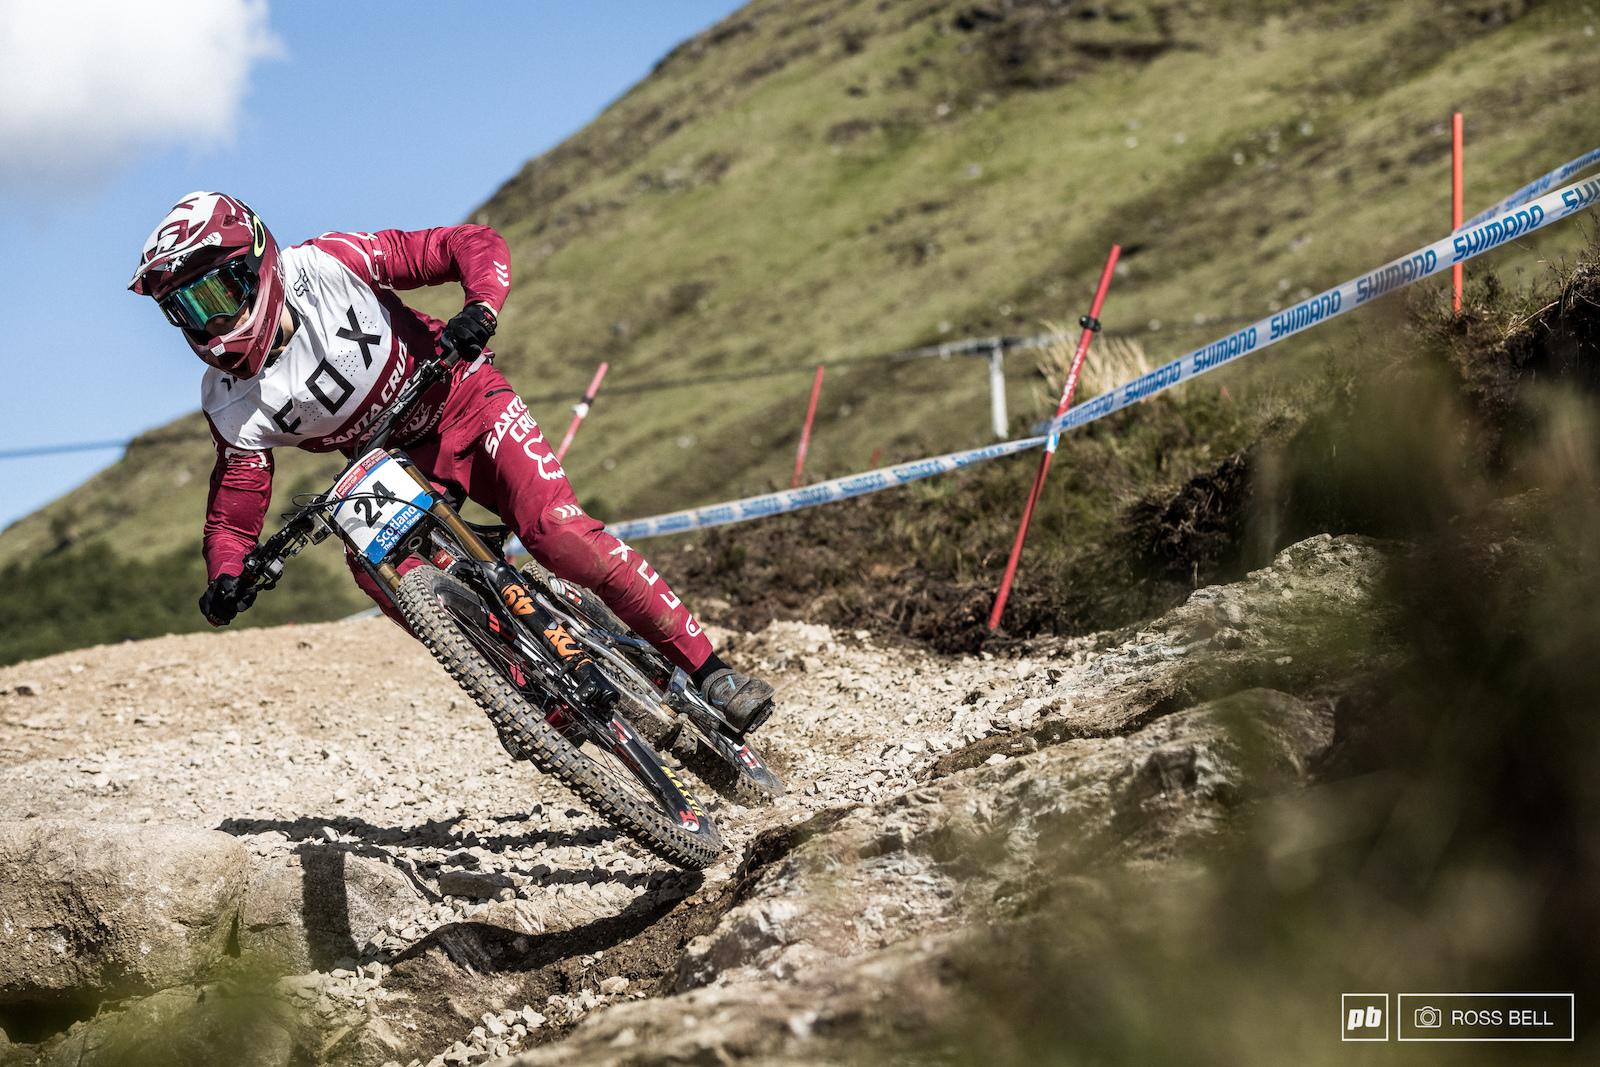 Loris Vergier is a man on a mission at the moment riding with calmness and composure.